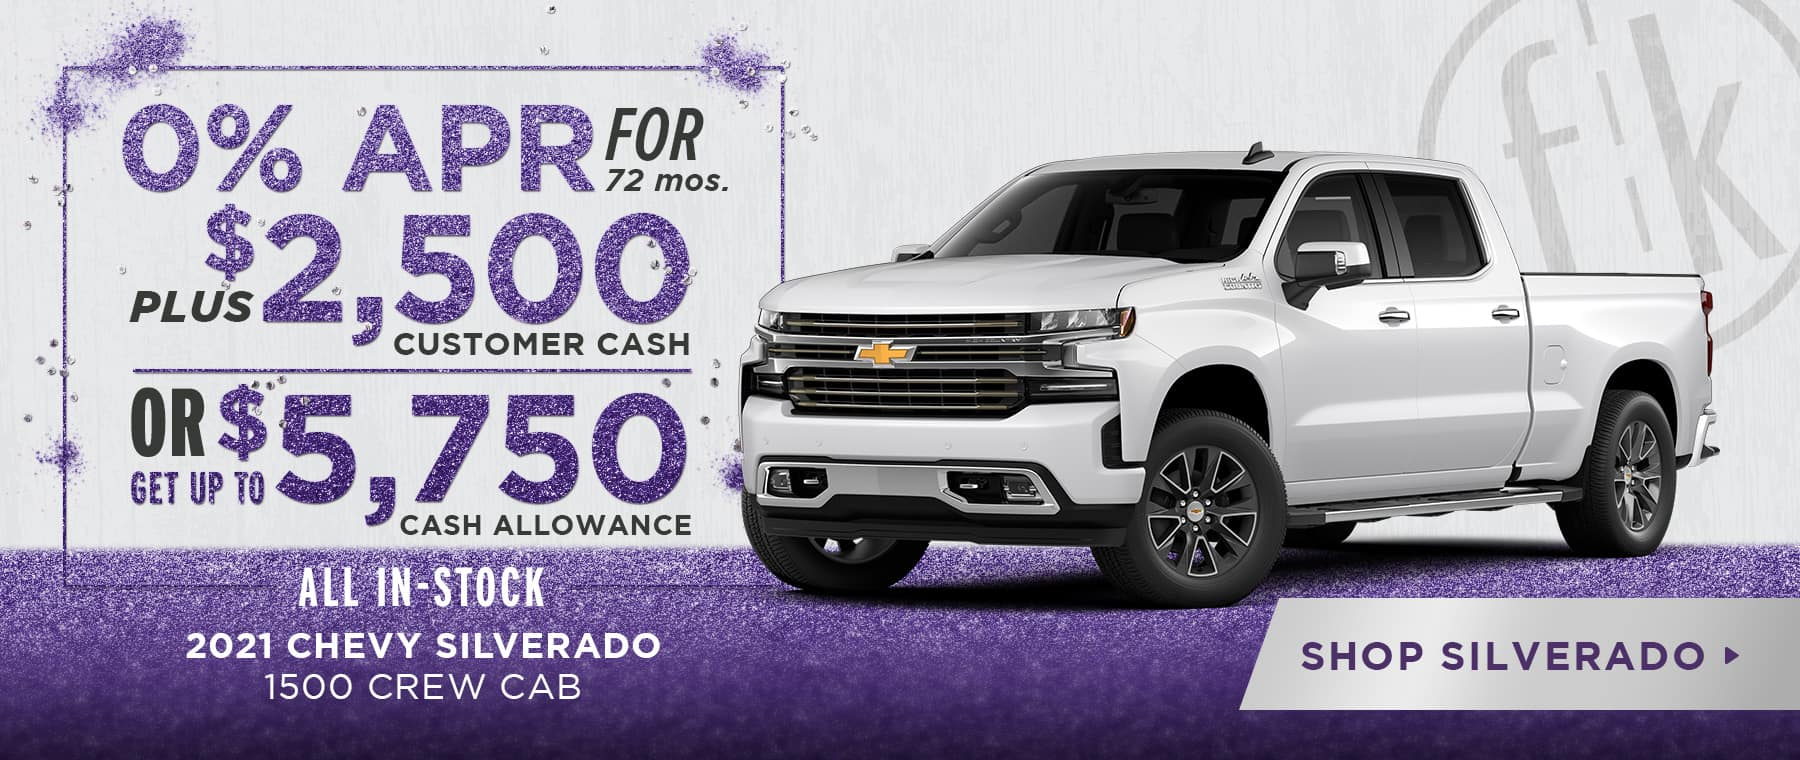 0% for 72 mos. PLUS $2,500 Customer Cash OR Get Up To $5,750 Cash Allowance 2020 Silverado 1500 Crew Cabs